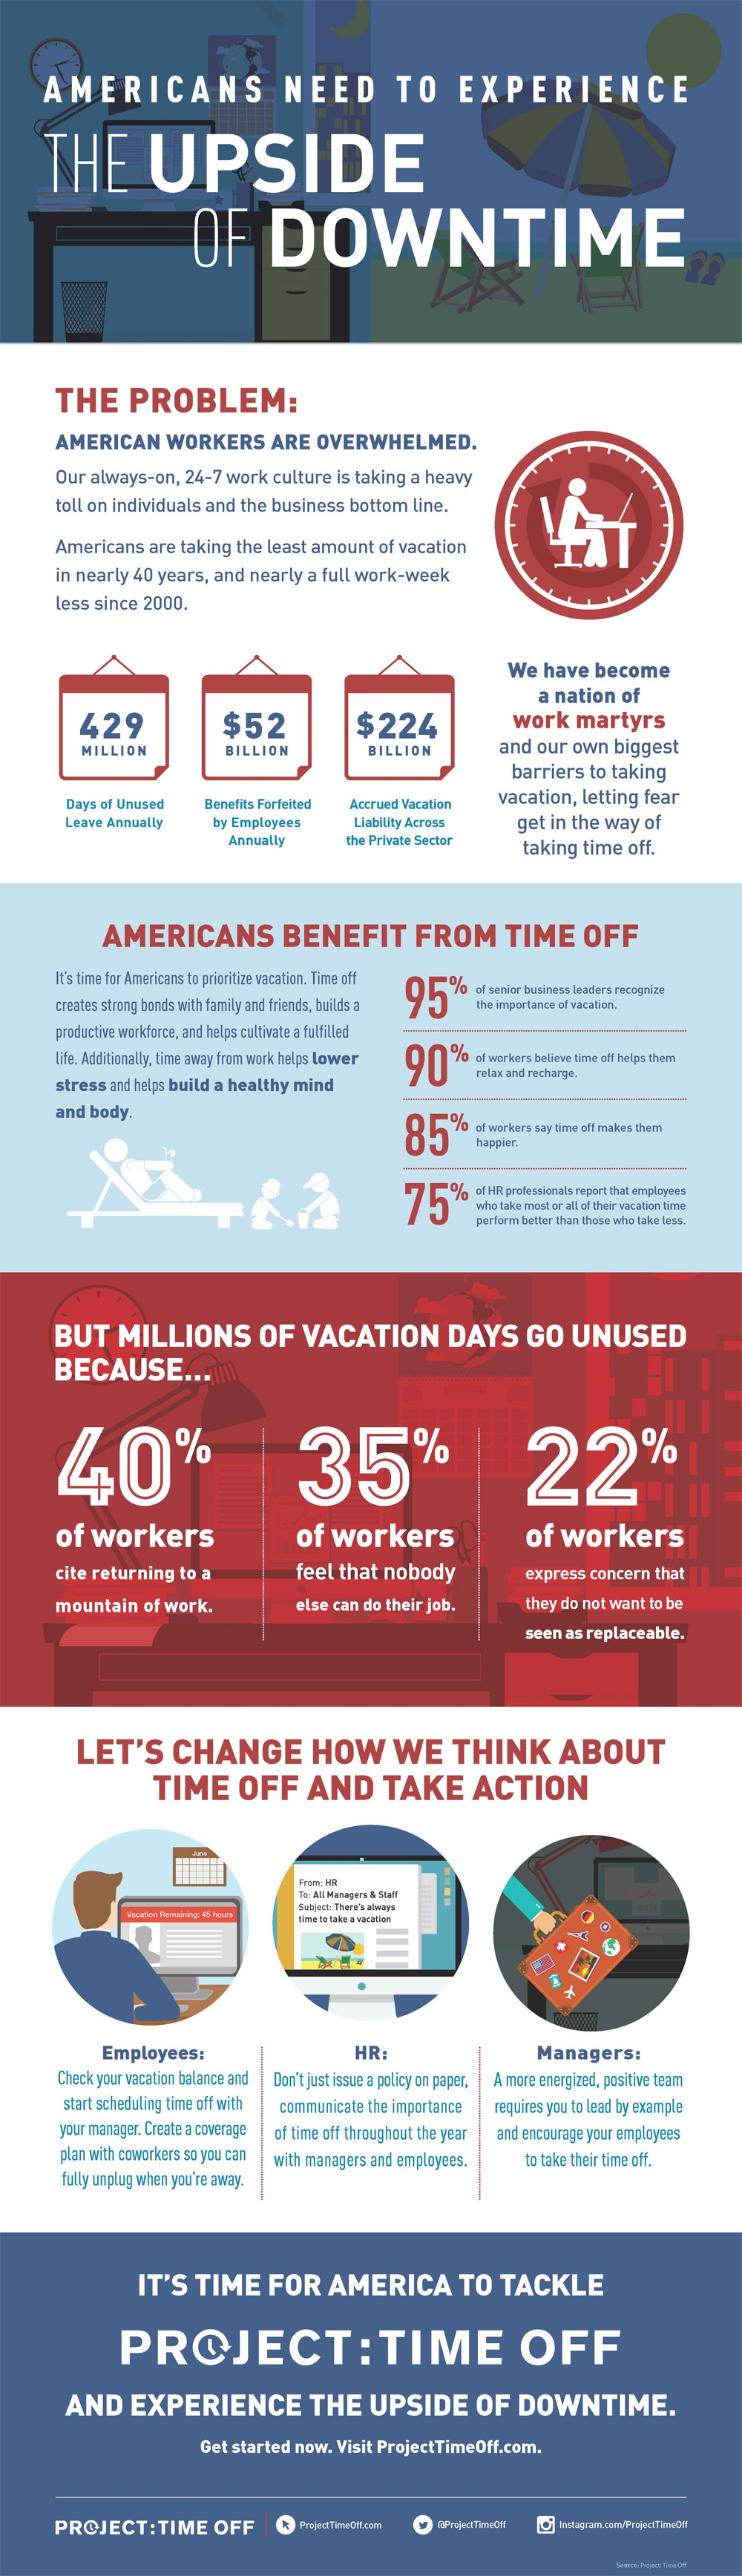 project time off infographic